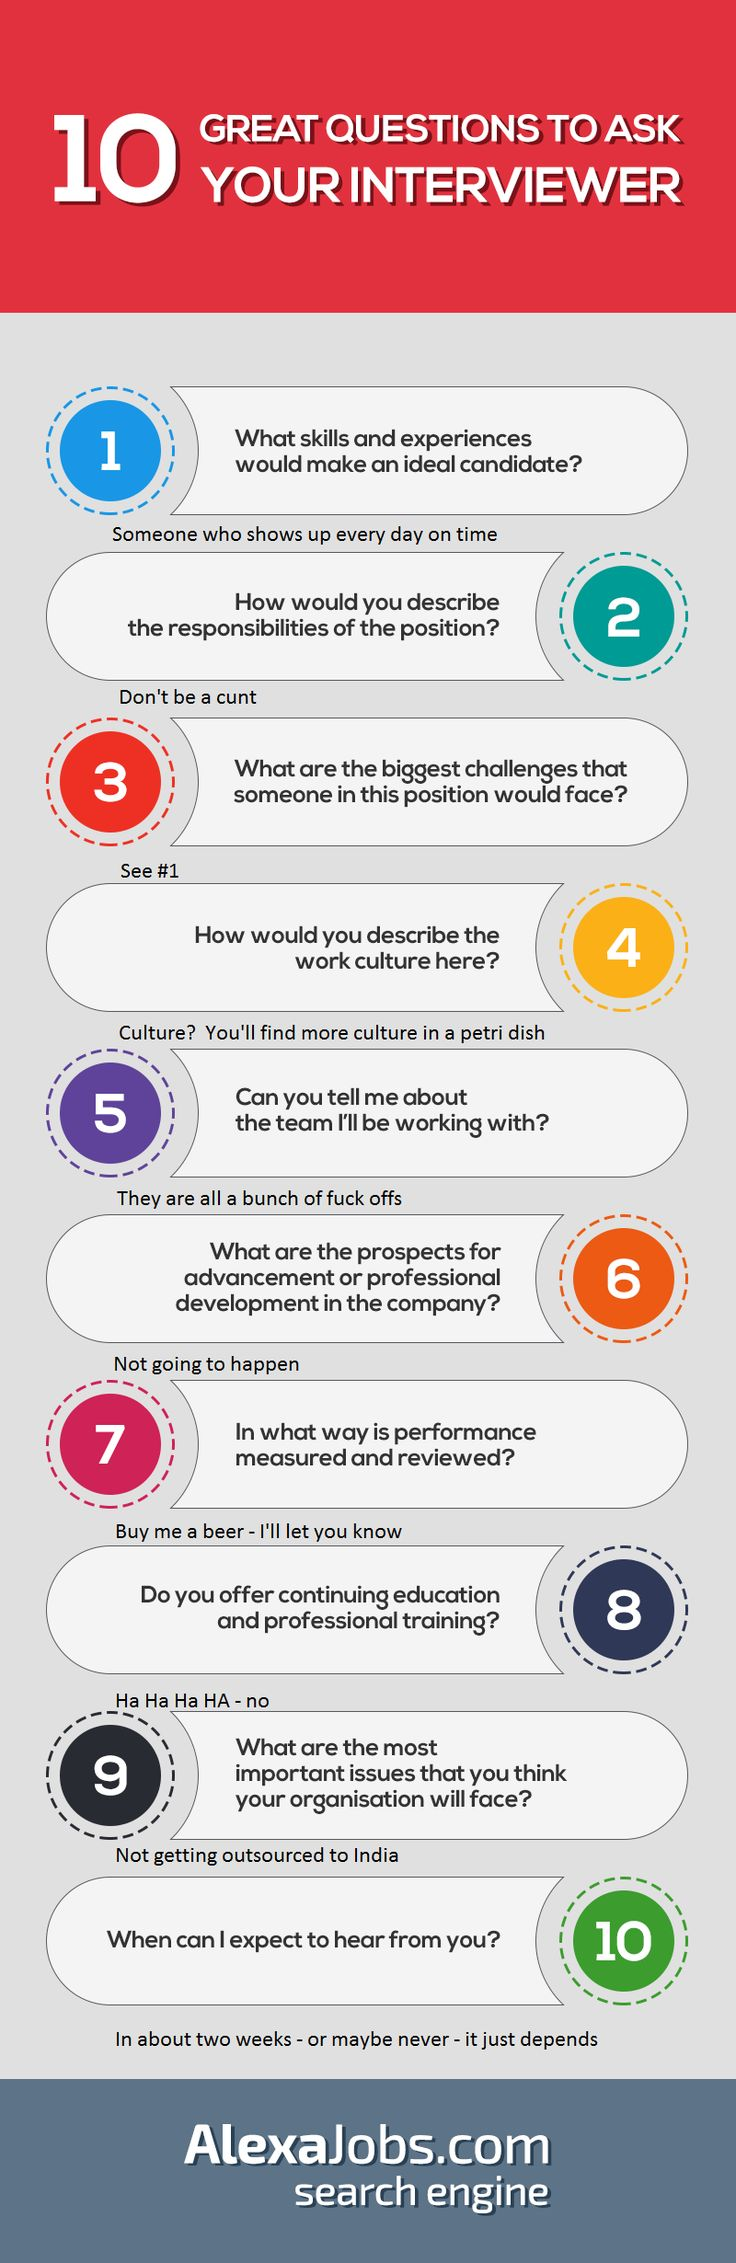 10 Questions To Ask Your Interviewer Updated